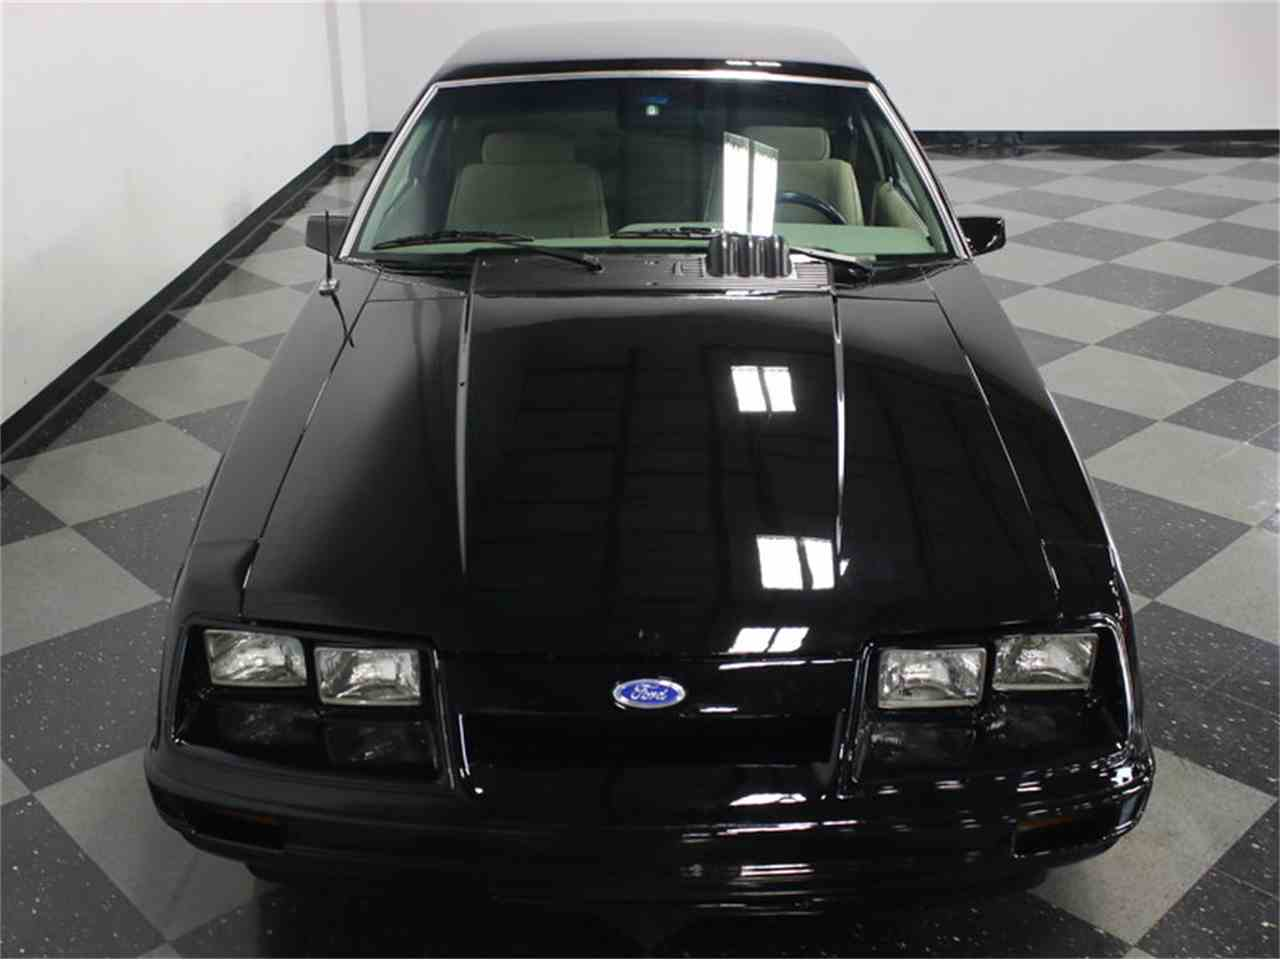 Large Picture of 1986 Ford Mustang SSP Interceptor located in Ft Worth Texas Offered by Streetside Classics - Dallas / Fort Worth - JZNT